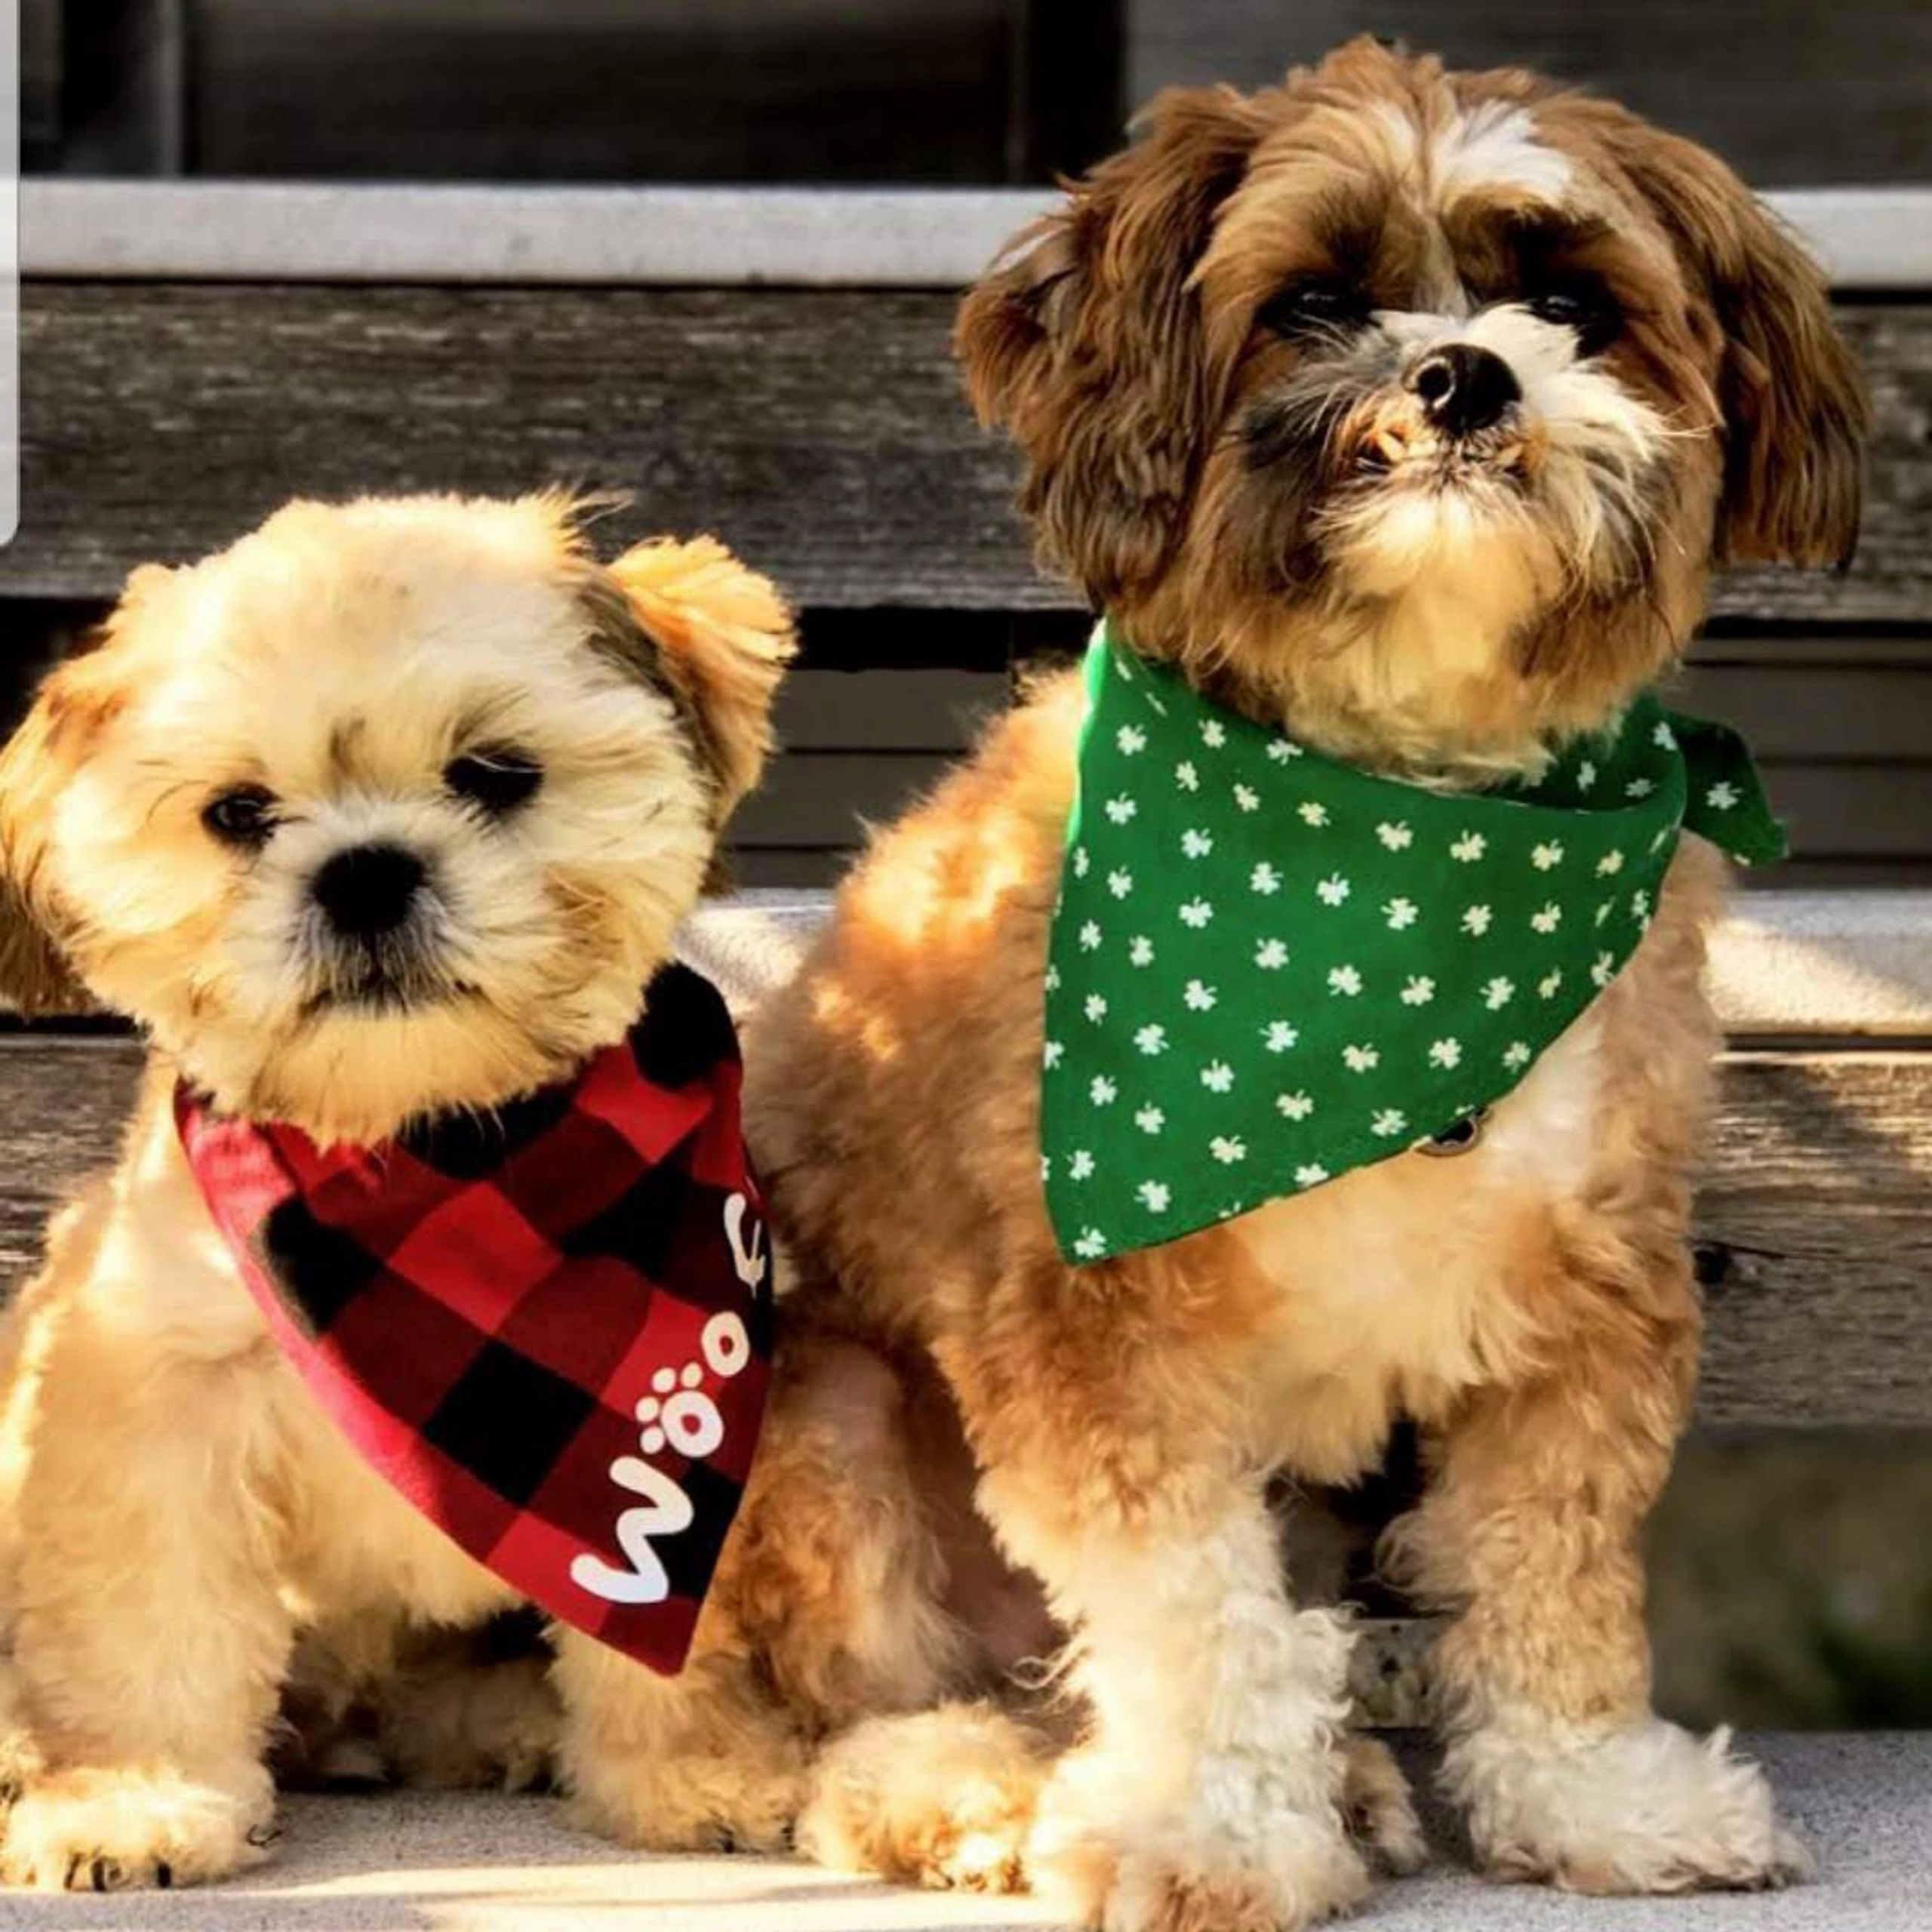 TimberCreek Puppies Puppy, Puppies,Shihpoo Puppies for